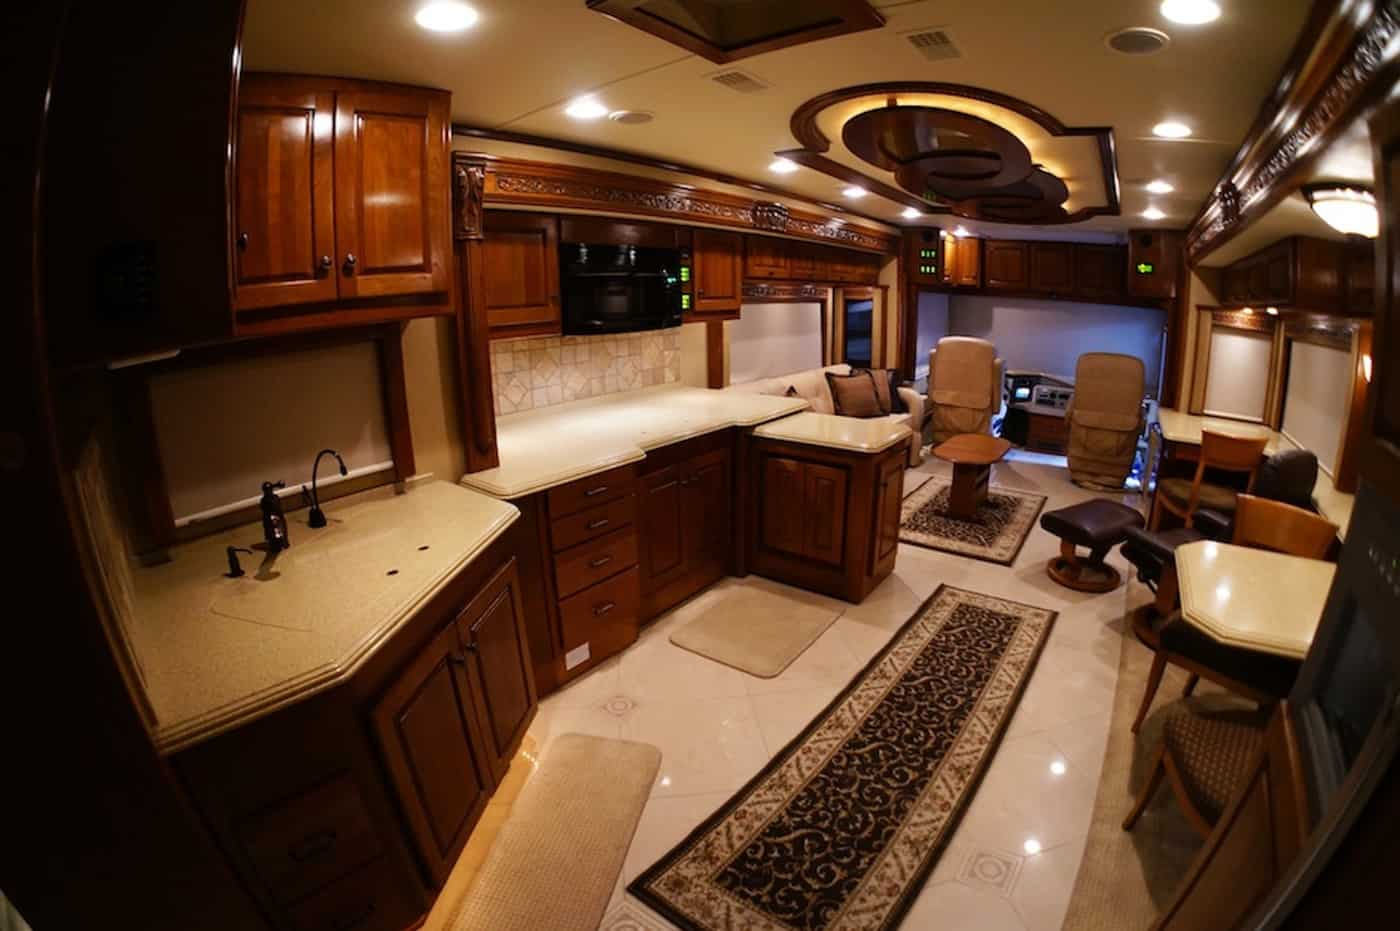 RV Interior Remodeling Near Me